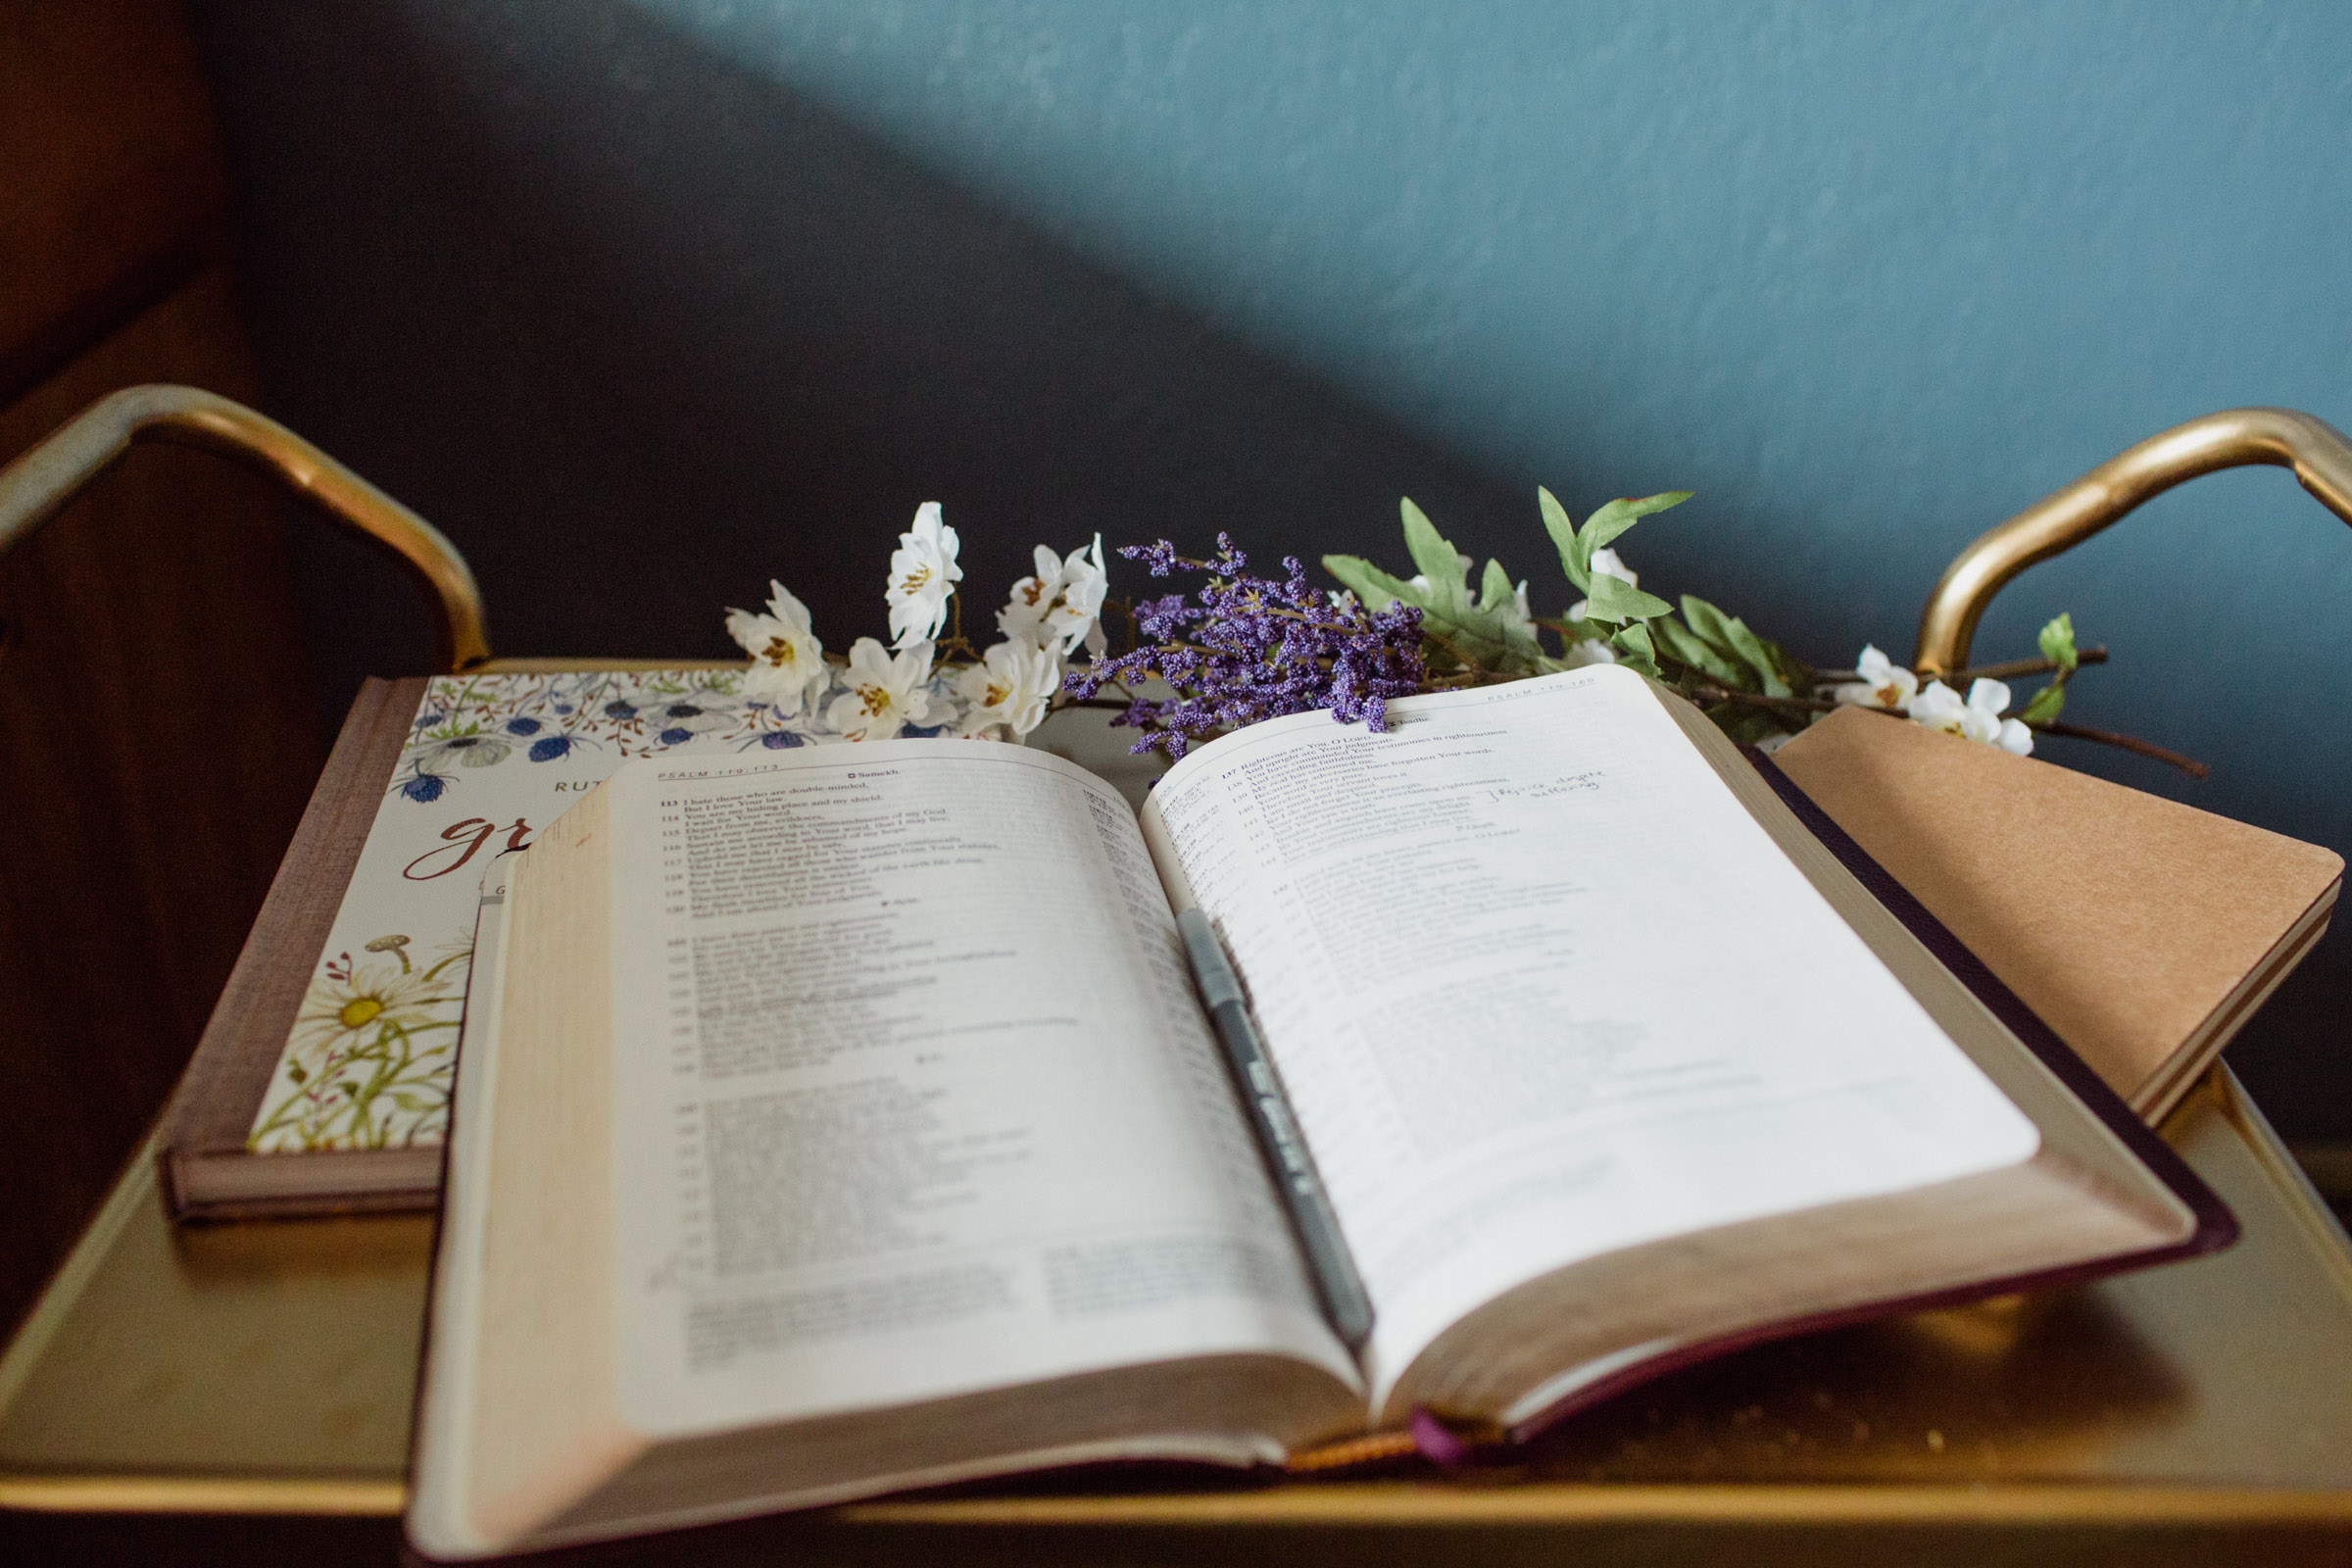 Bible and flowers